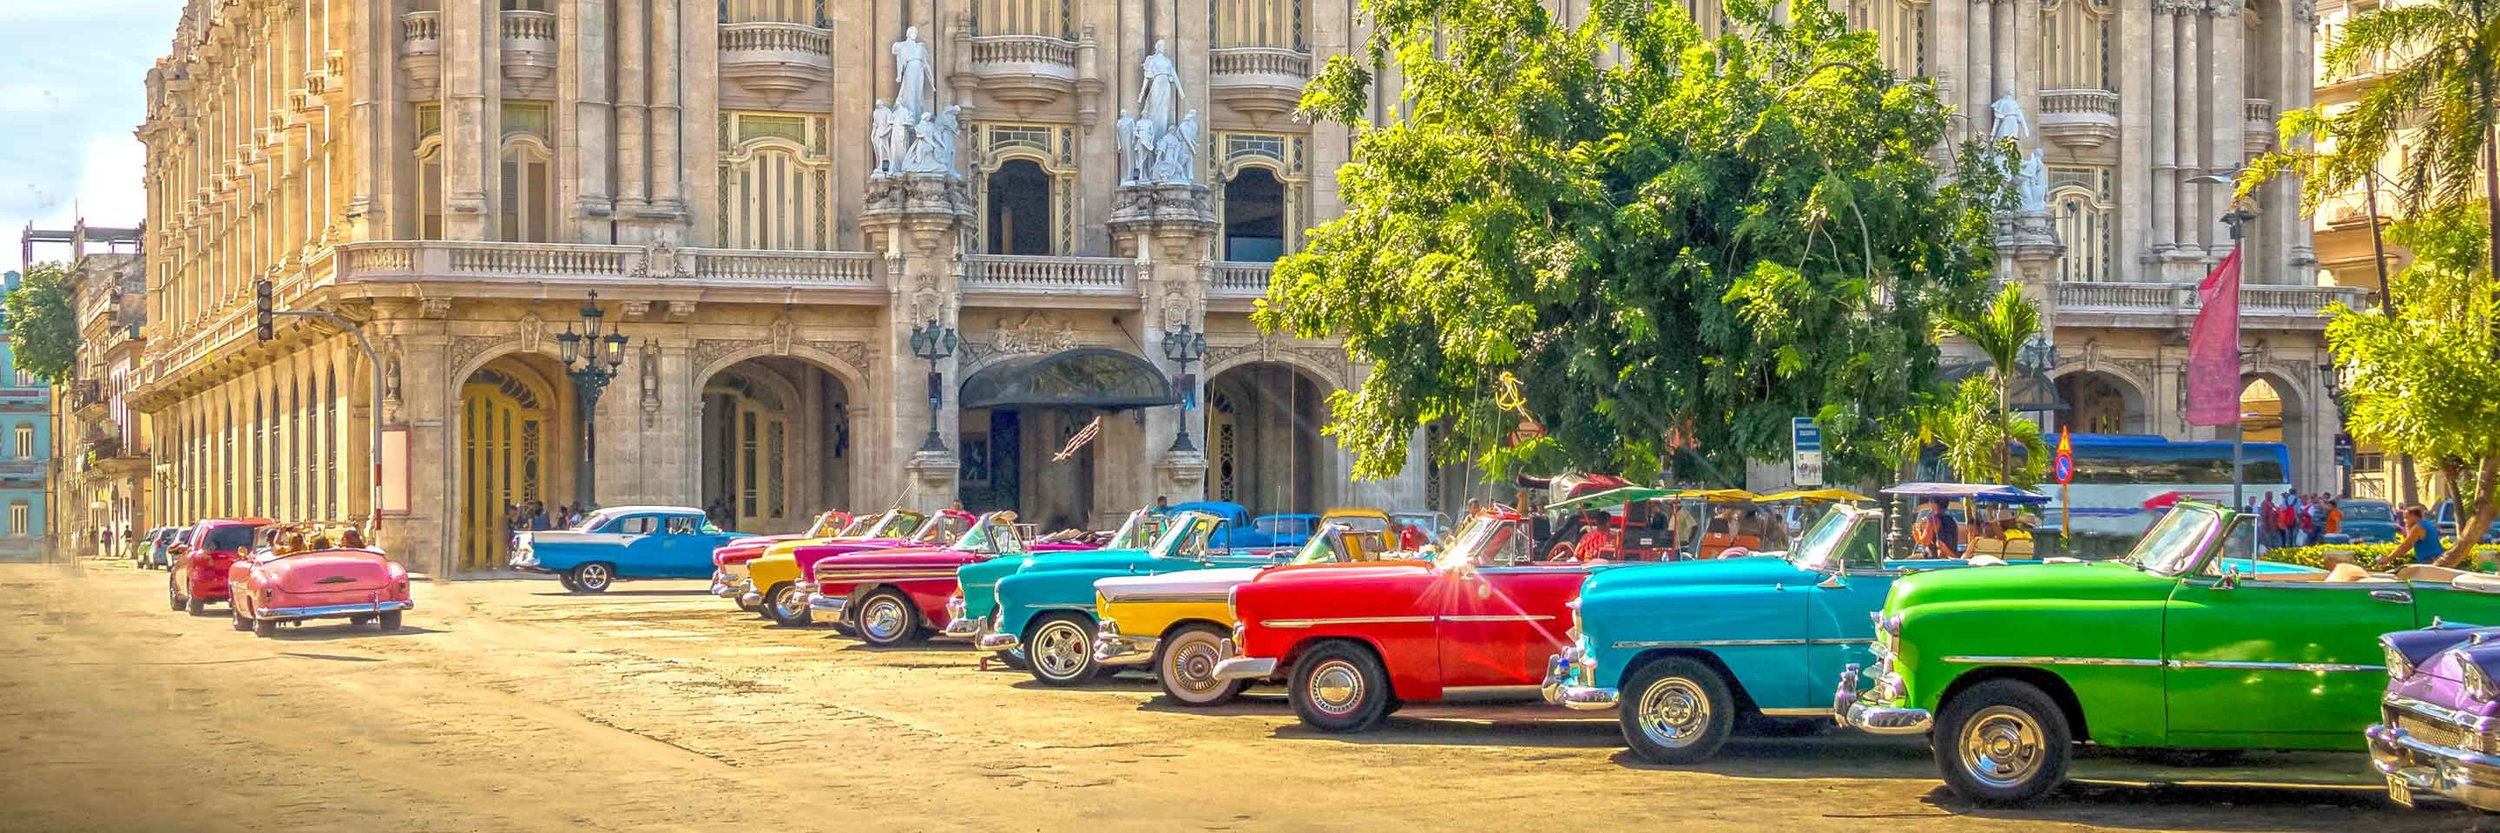 Cuba Celebration - 11-Day Voyage, Round-trip MiamiDecember 28, 2019 - January 8, 2020